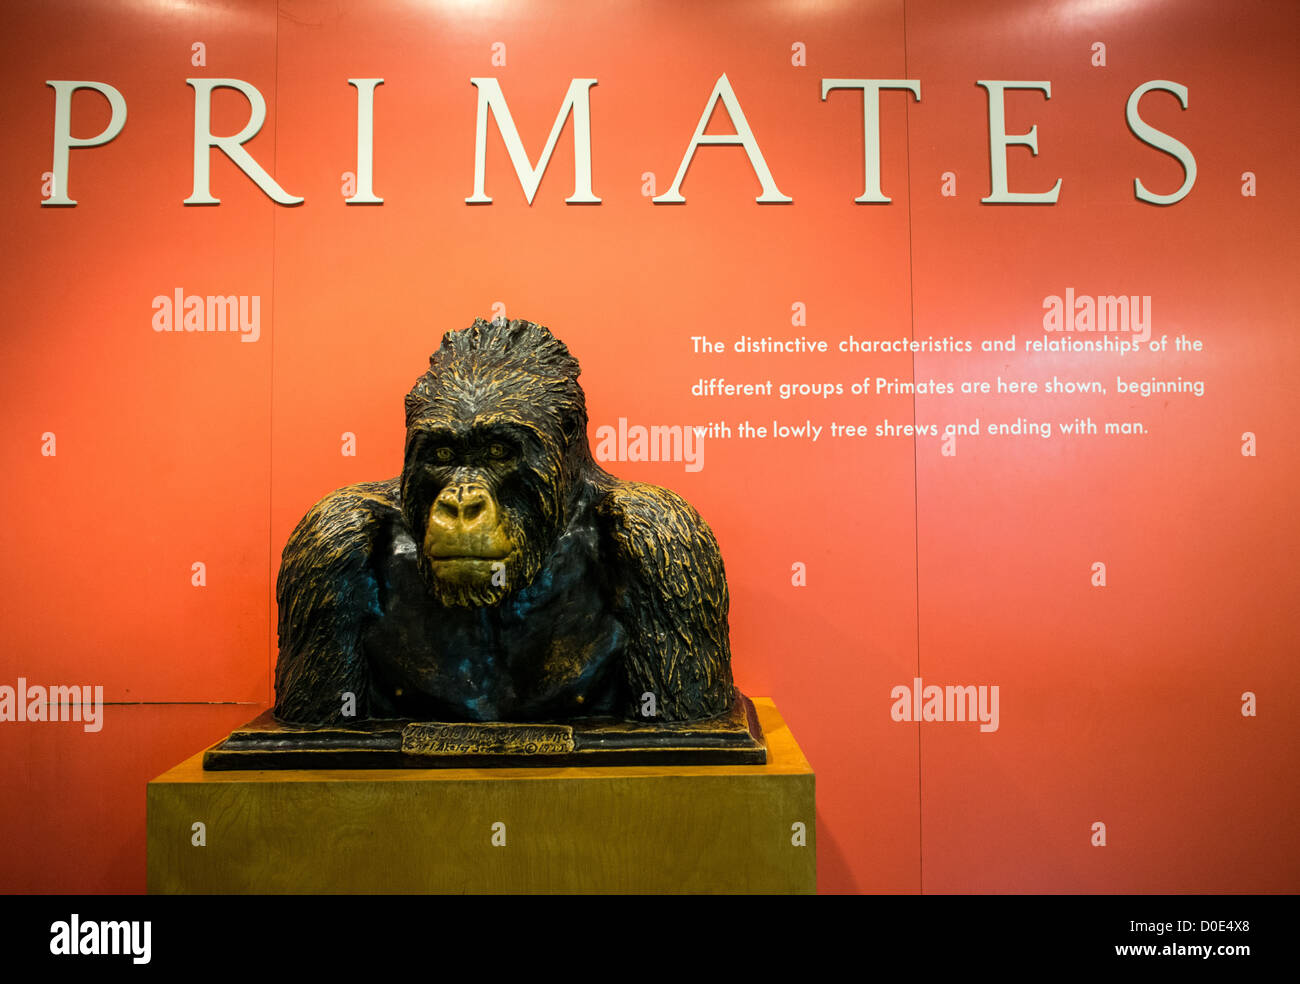 NEW YORK, NY - Primates exhibit at the Museum of Natural History in New York's Upper West Side neighborhood, - Stock Image